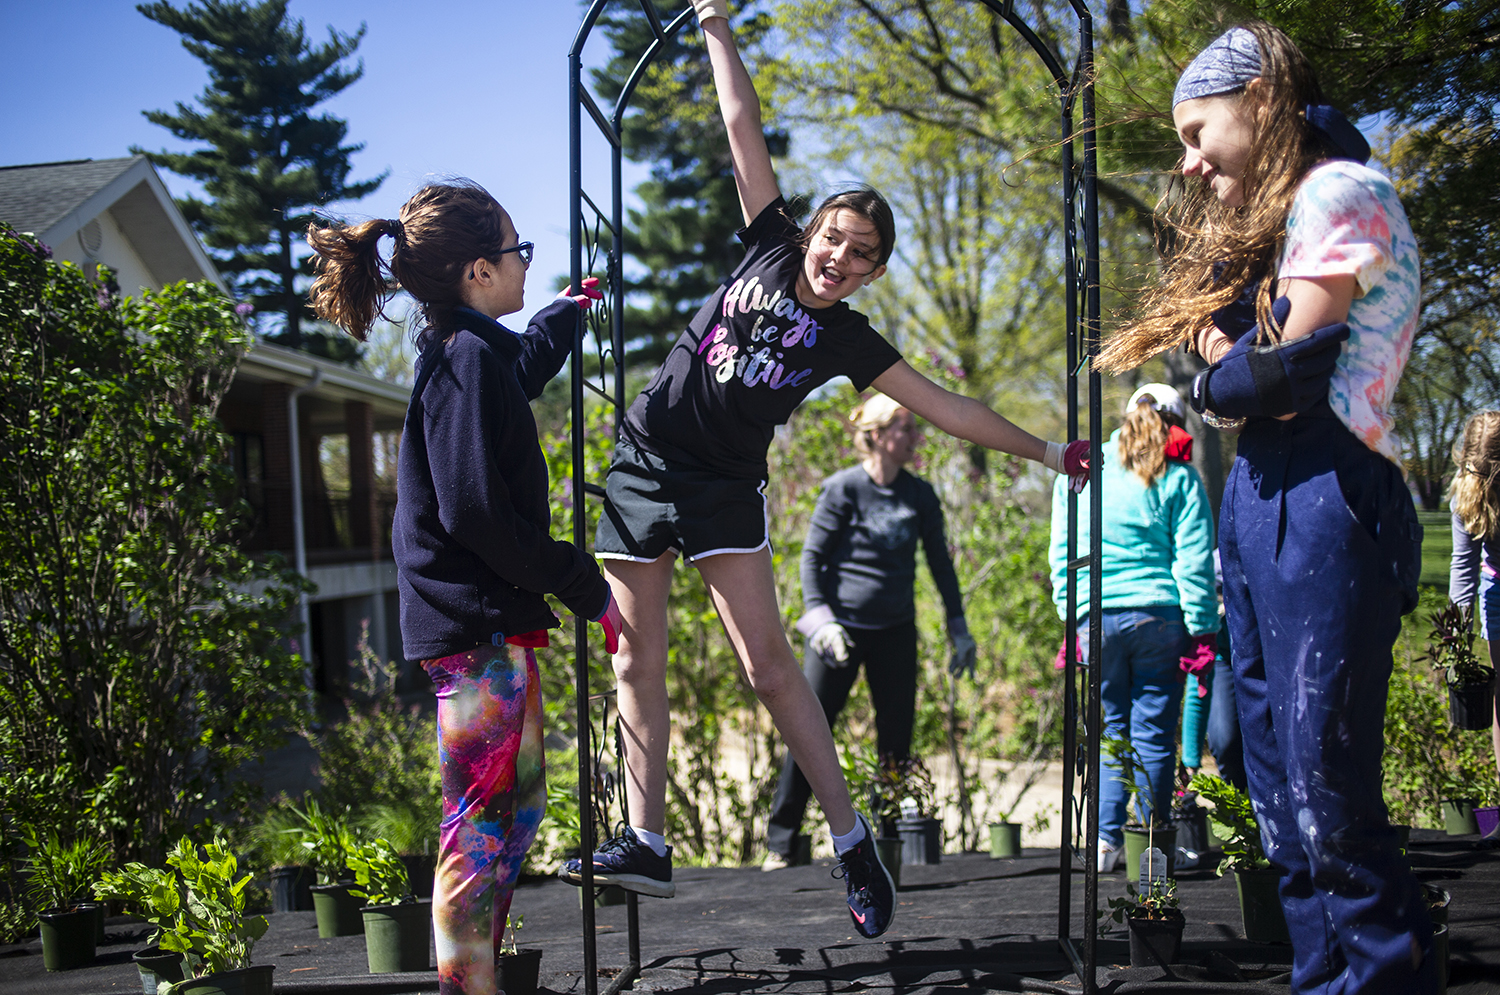 Sarah Triphahn, 11, of Girl Scout Troop 6307 from Blessed Sacrament School, climbs up an arbor while she and her fellow Girl Scouts install a monarch butterfly habitat at Lincoln Greens Golf Course, Friday, April 26, 2019, in Springfield, Ill. The habitat was for the Girl Scouts' Silver Award project that they began in August of 2018. They met with Buckley's Prairie Landscaping and worked out a design that featured native Illinois plants that would benefit the monarch butterfly including milkweed and goldenrod. The project was paid for by the Illinois Schoolyard Habitat Action Grant the group won from the Illinois Department of Natural Resources. [Justin L. Fowler/The State Journal-Register]